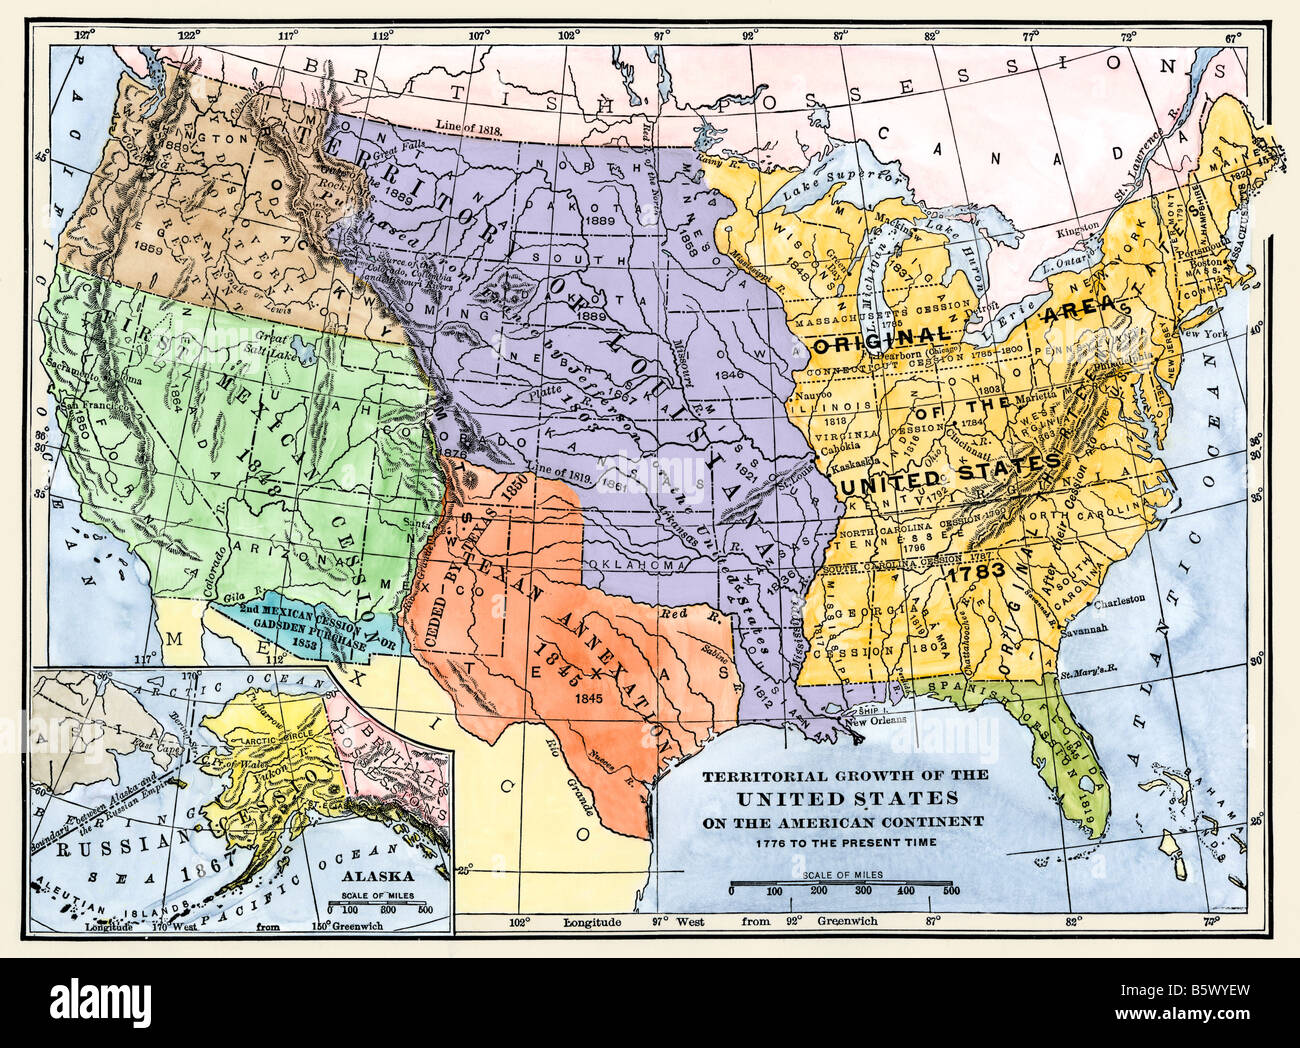 Us Map Stock Photos & Us Map Stock Images - Alamy